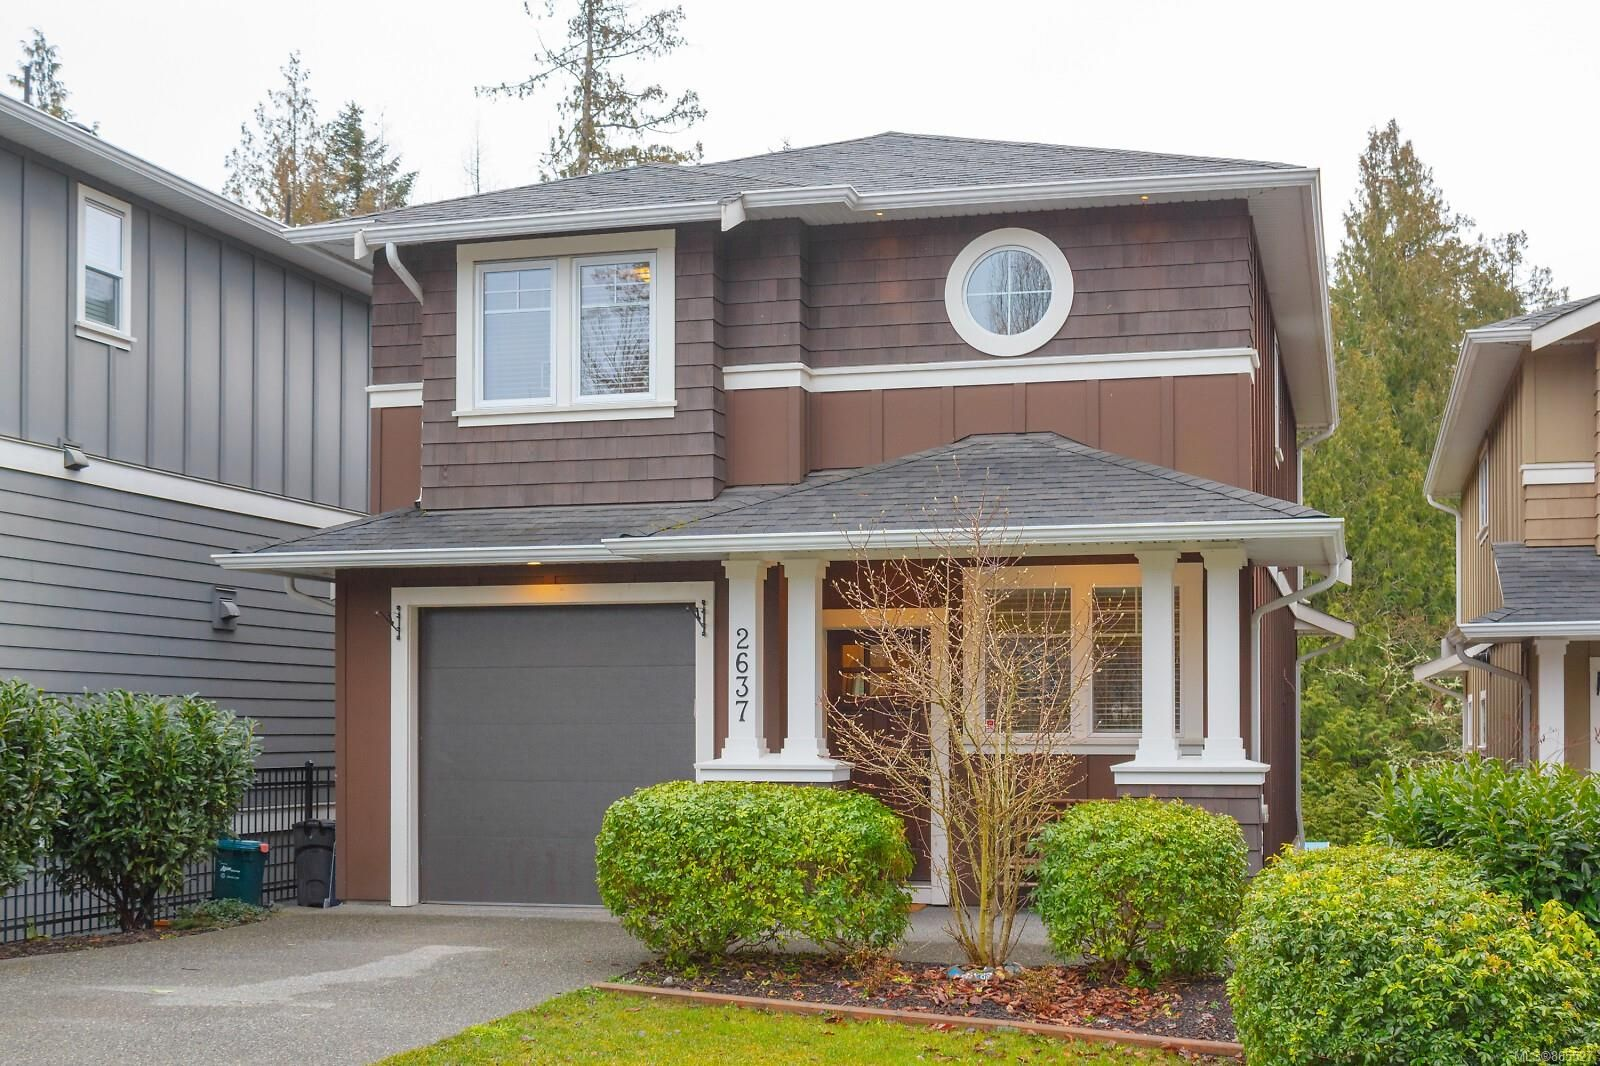 Main Photo: 2637 Traverse Terr in : La Atkins House for sale (Langford)  : MLS®# 865527